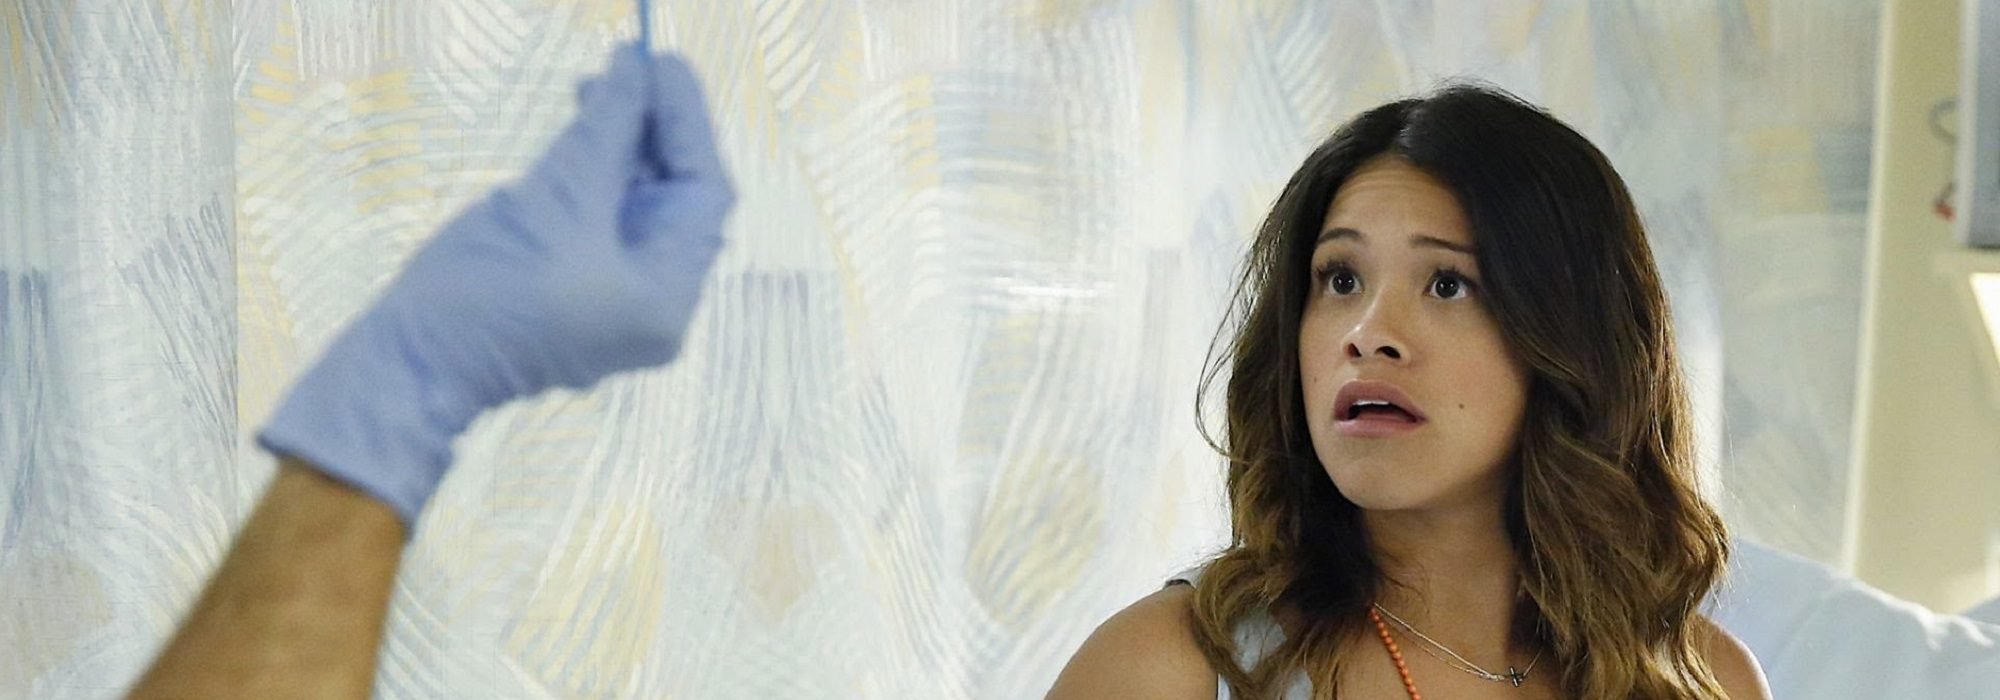 'Jane the Virgin' y otras 5 series basadas en telenovelas